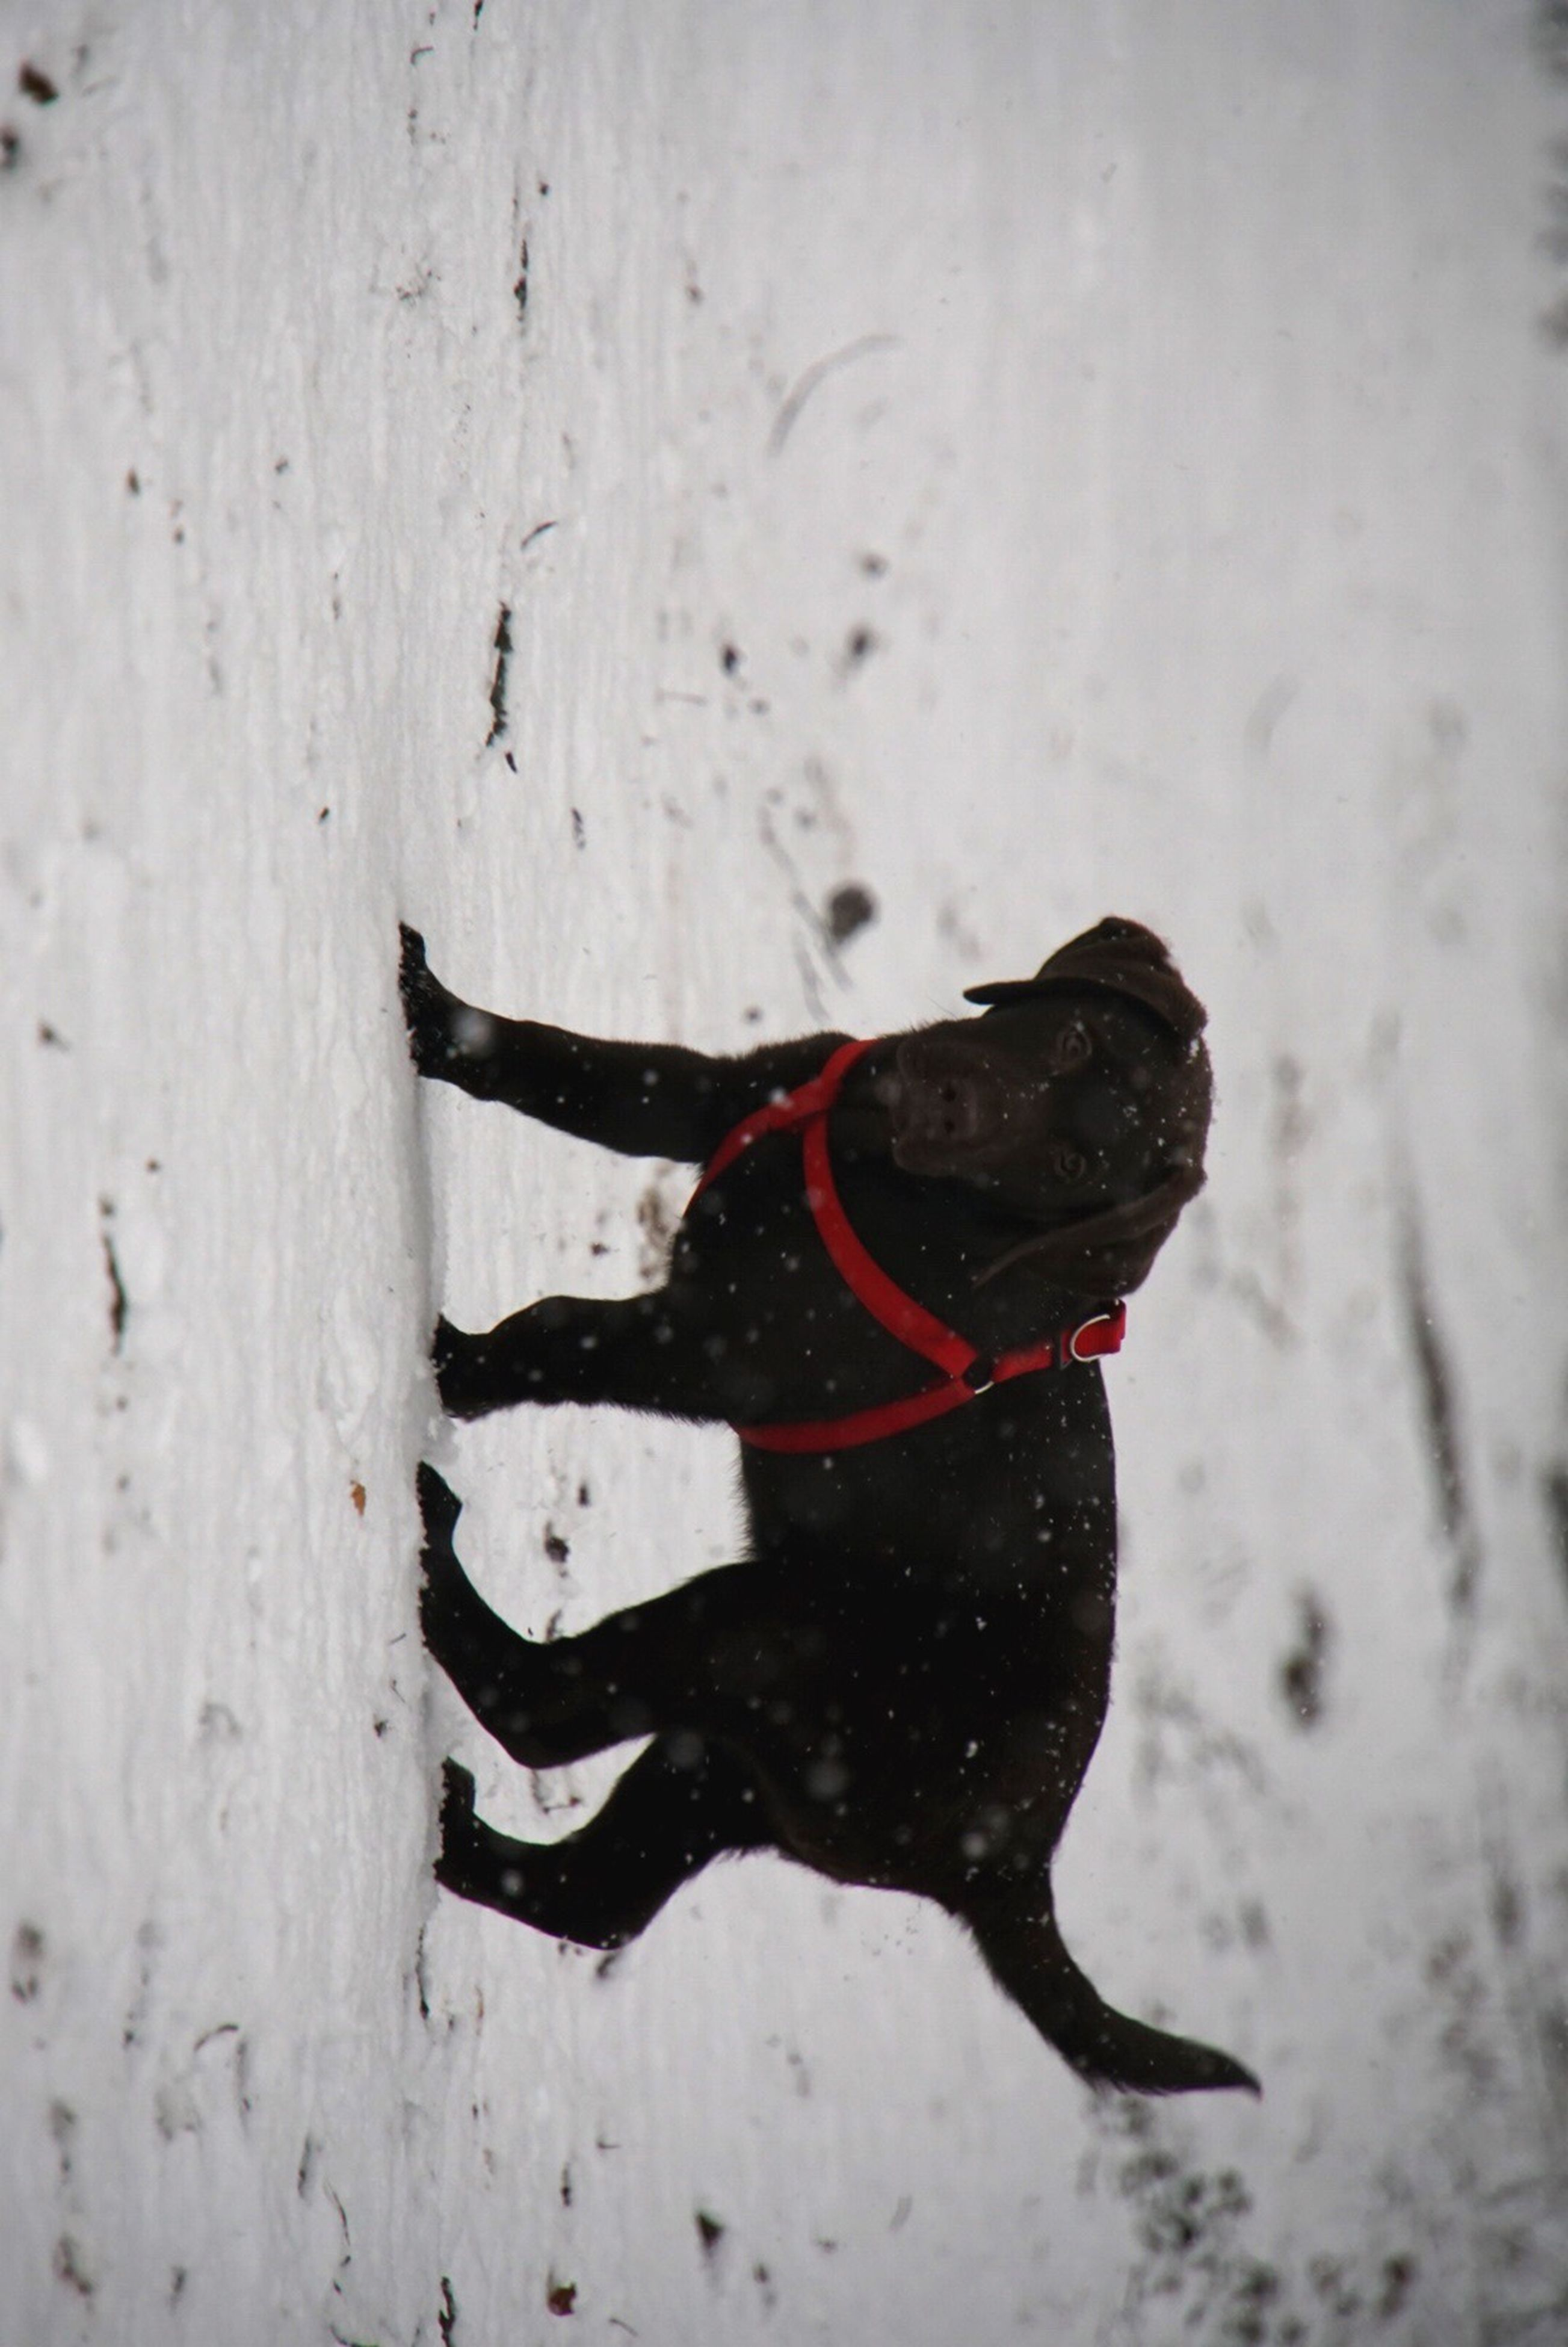 domestic animals, dog, one animal, pets, mammal, animal themes, black color, no people, day, outdoors, nature